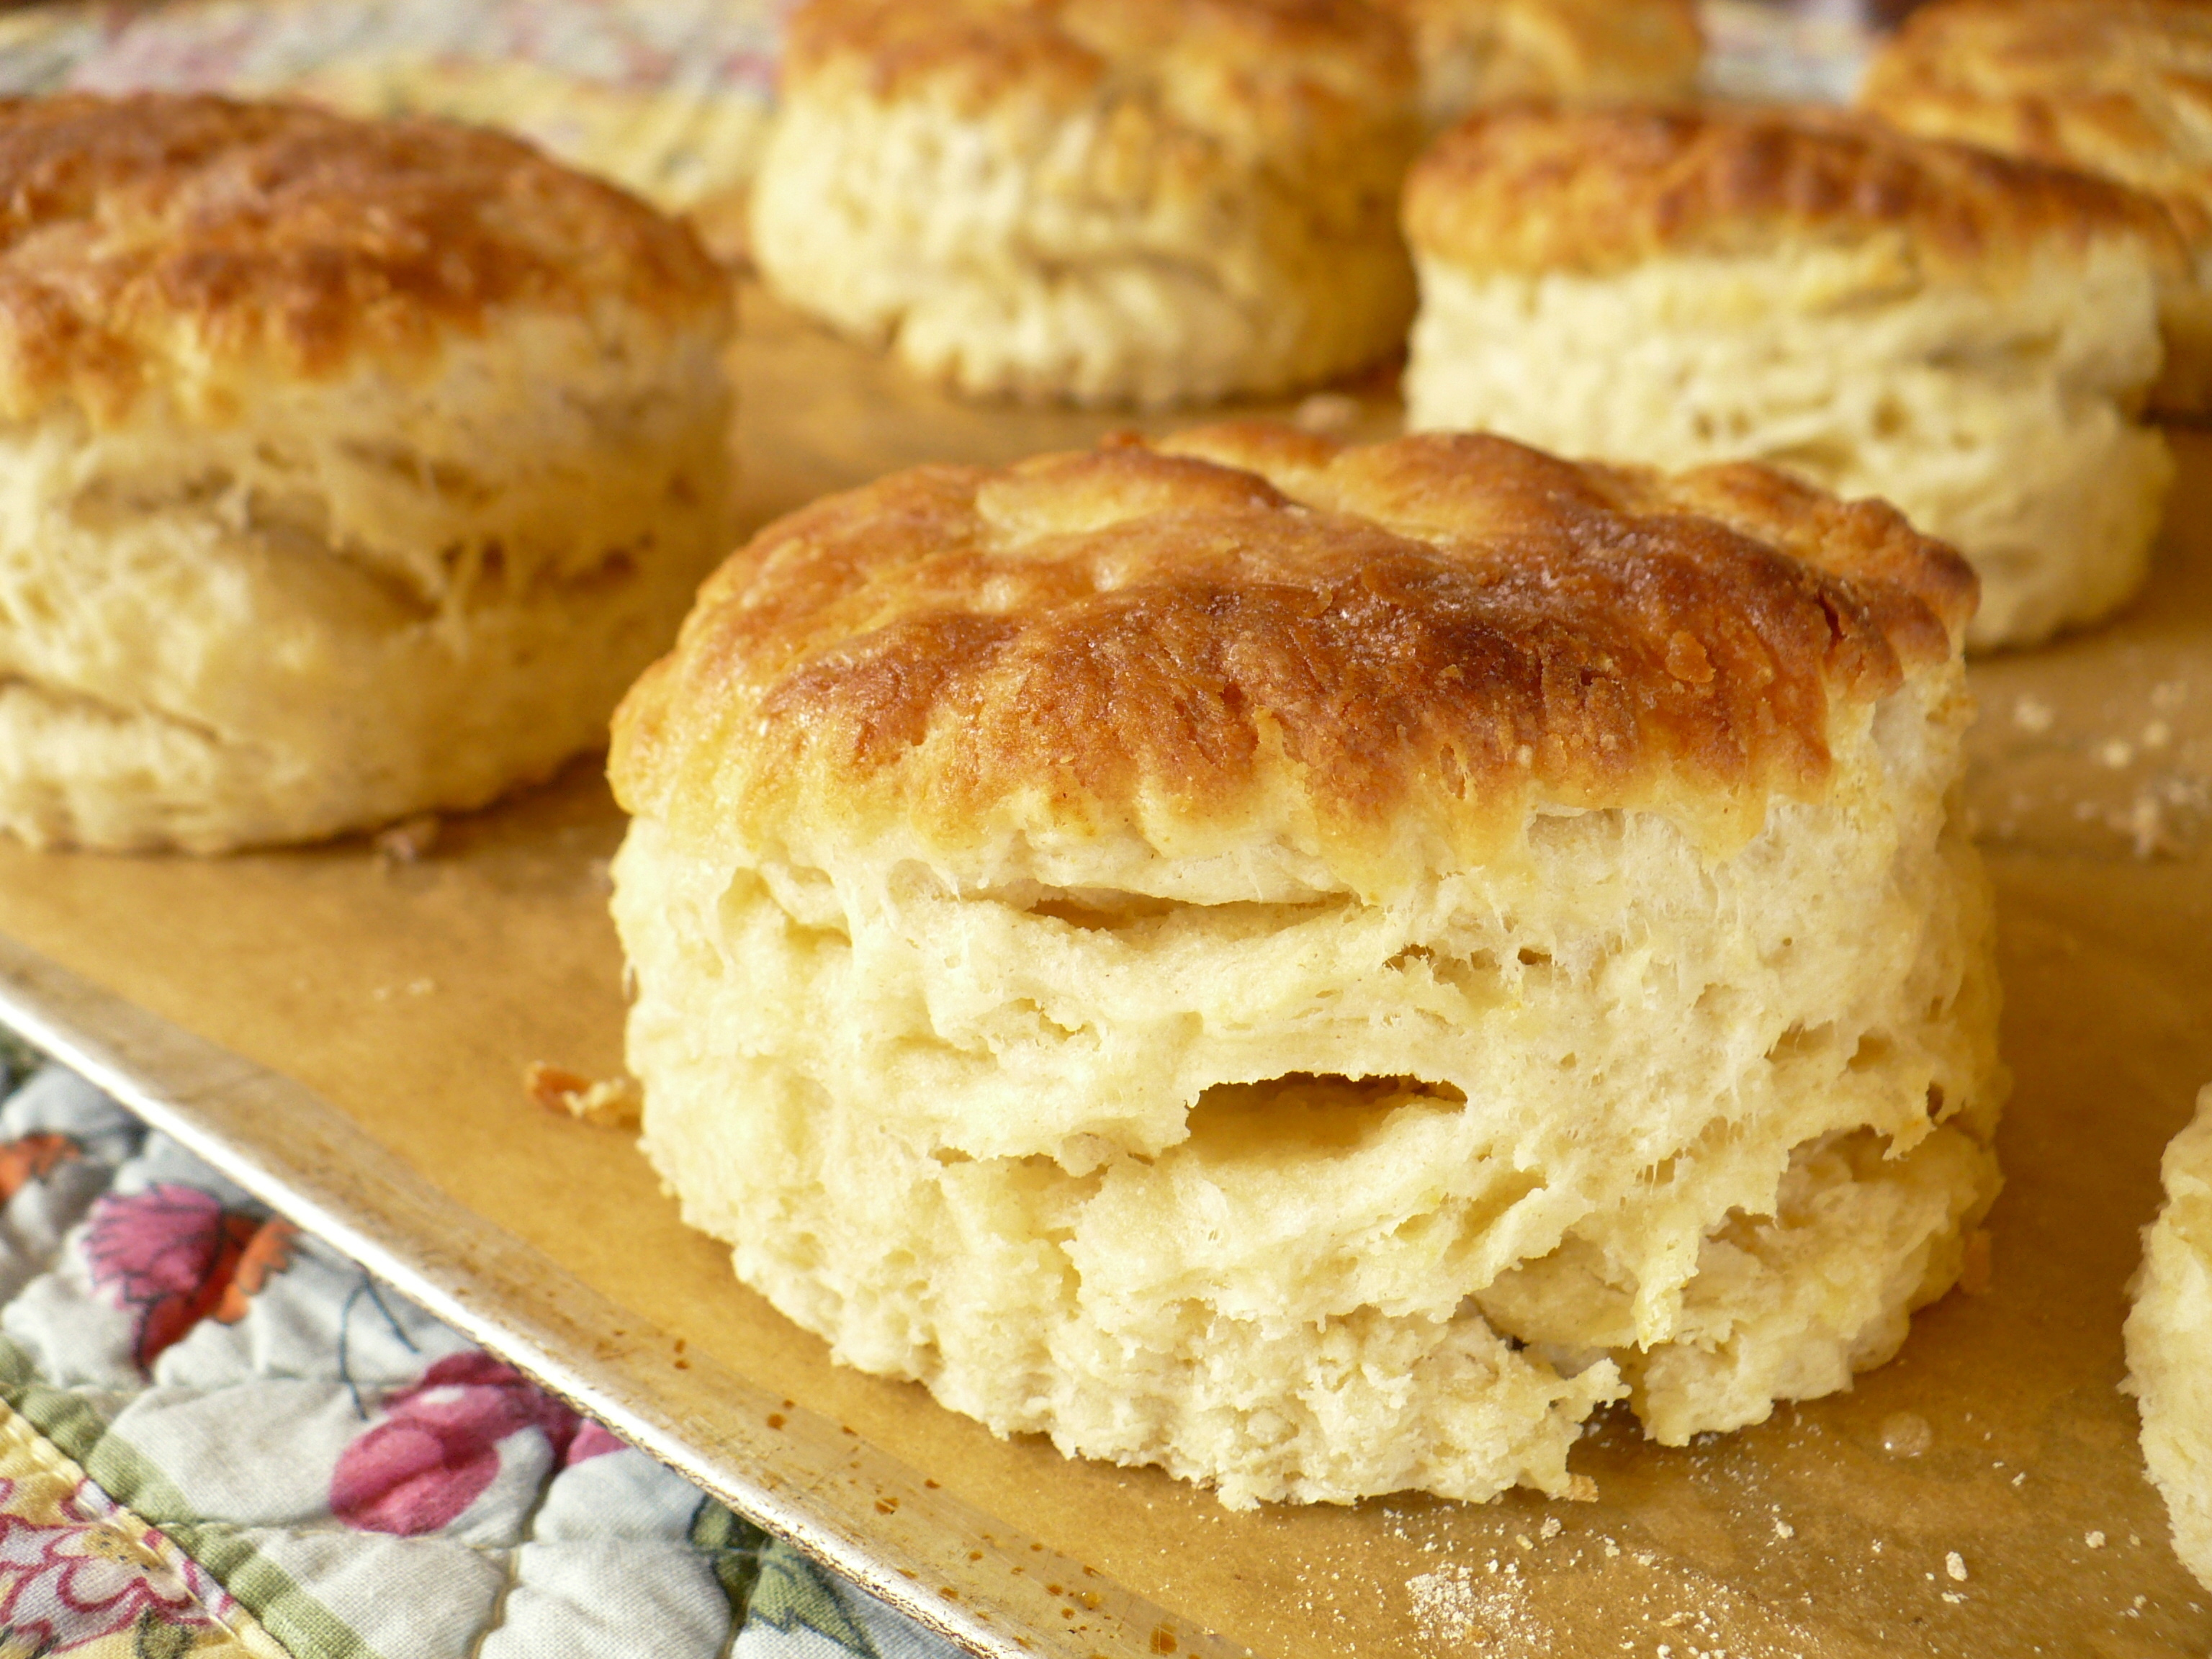 Tender, flaky mile-high buttermilk biscuits.